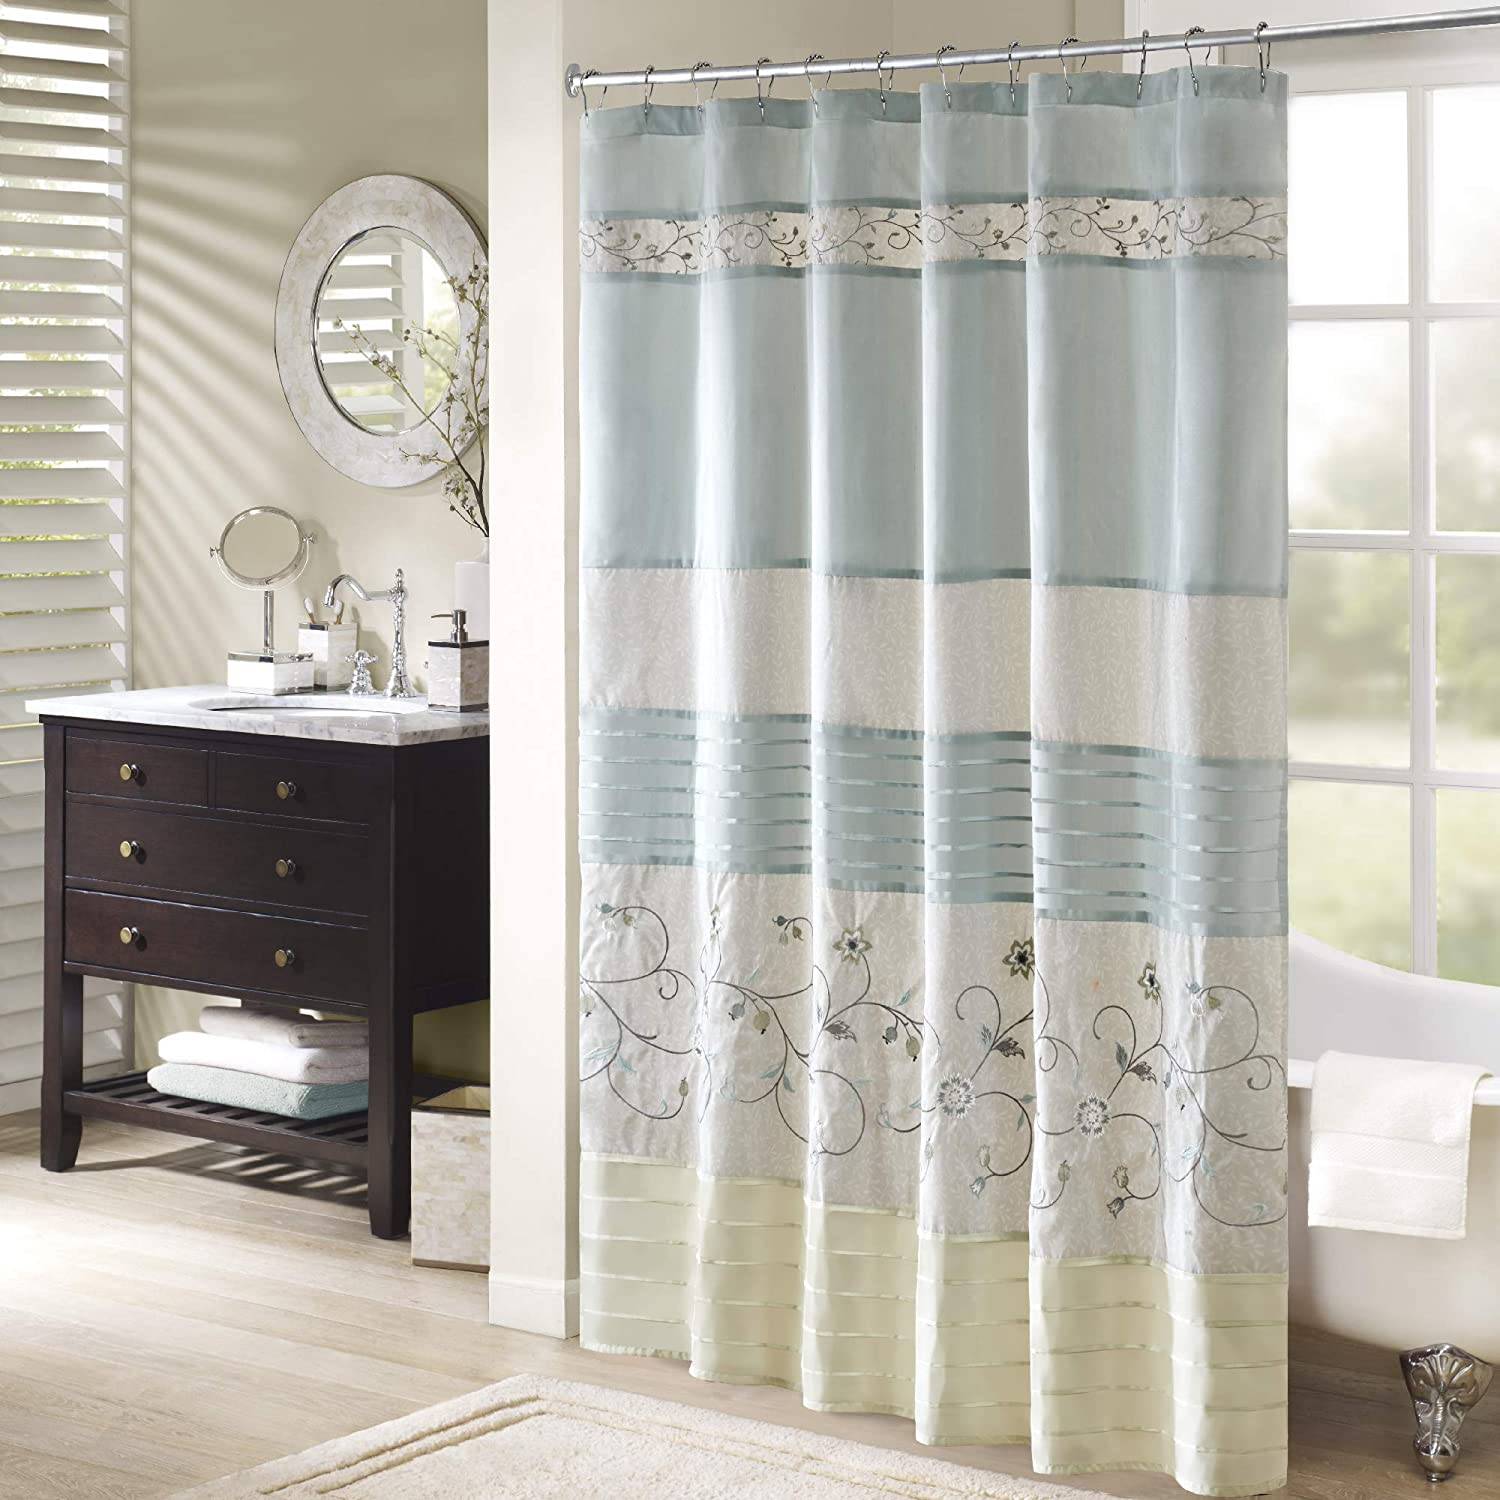 Amazon Madison Park Serene Faux Silk Embroidered Floral Shower Curtain Aqua 72x72 Home Kitchen